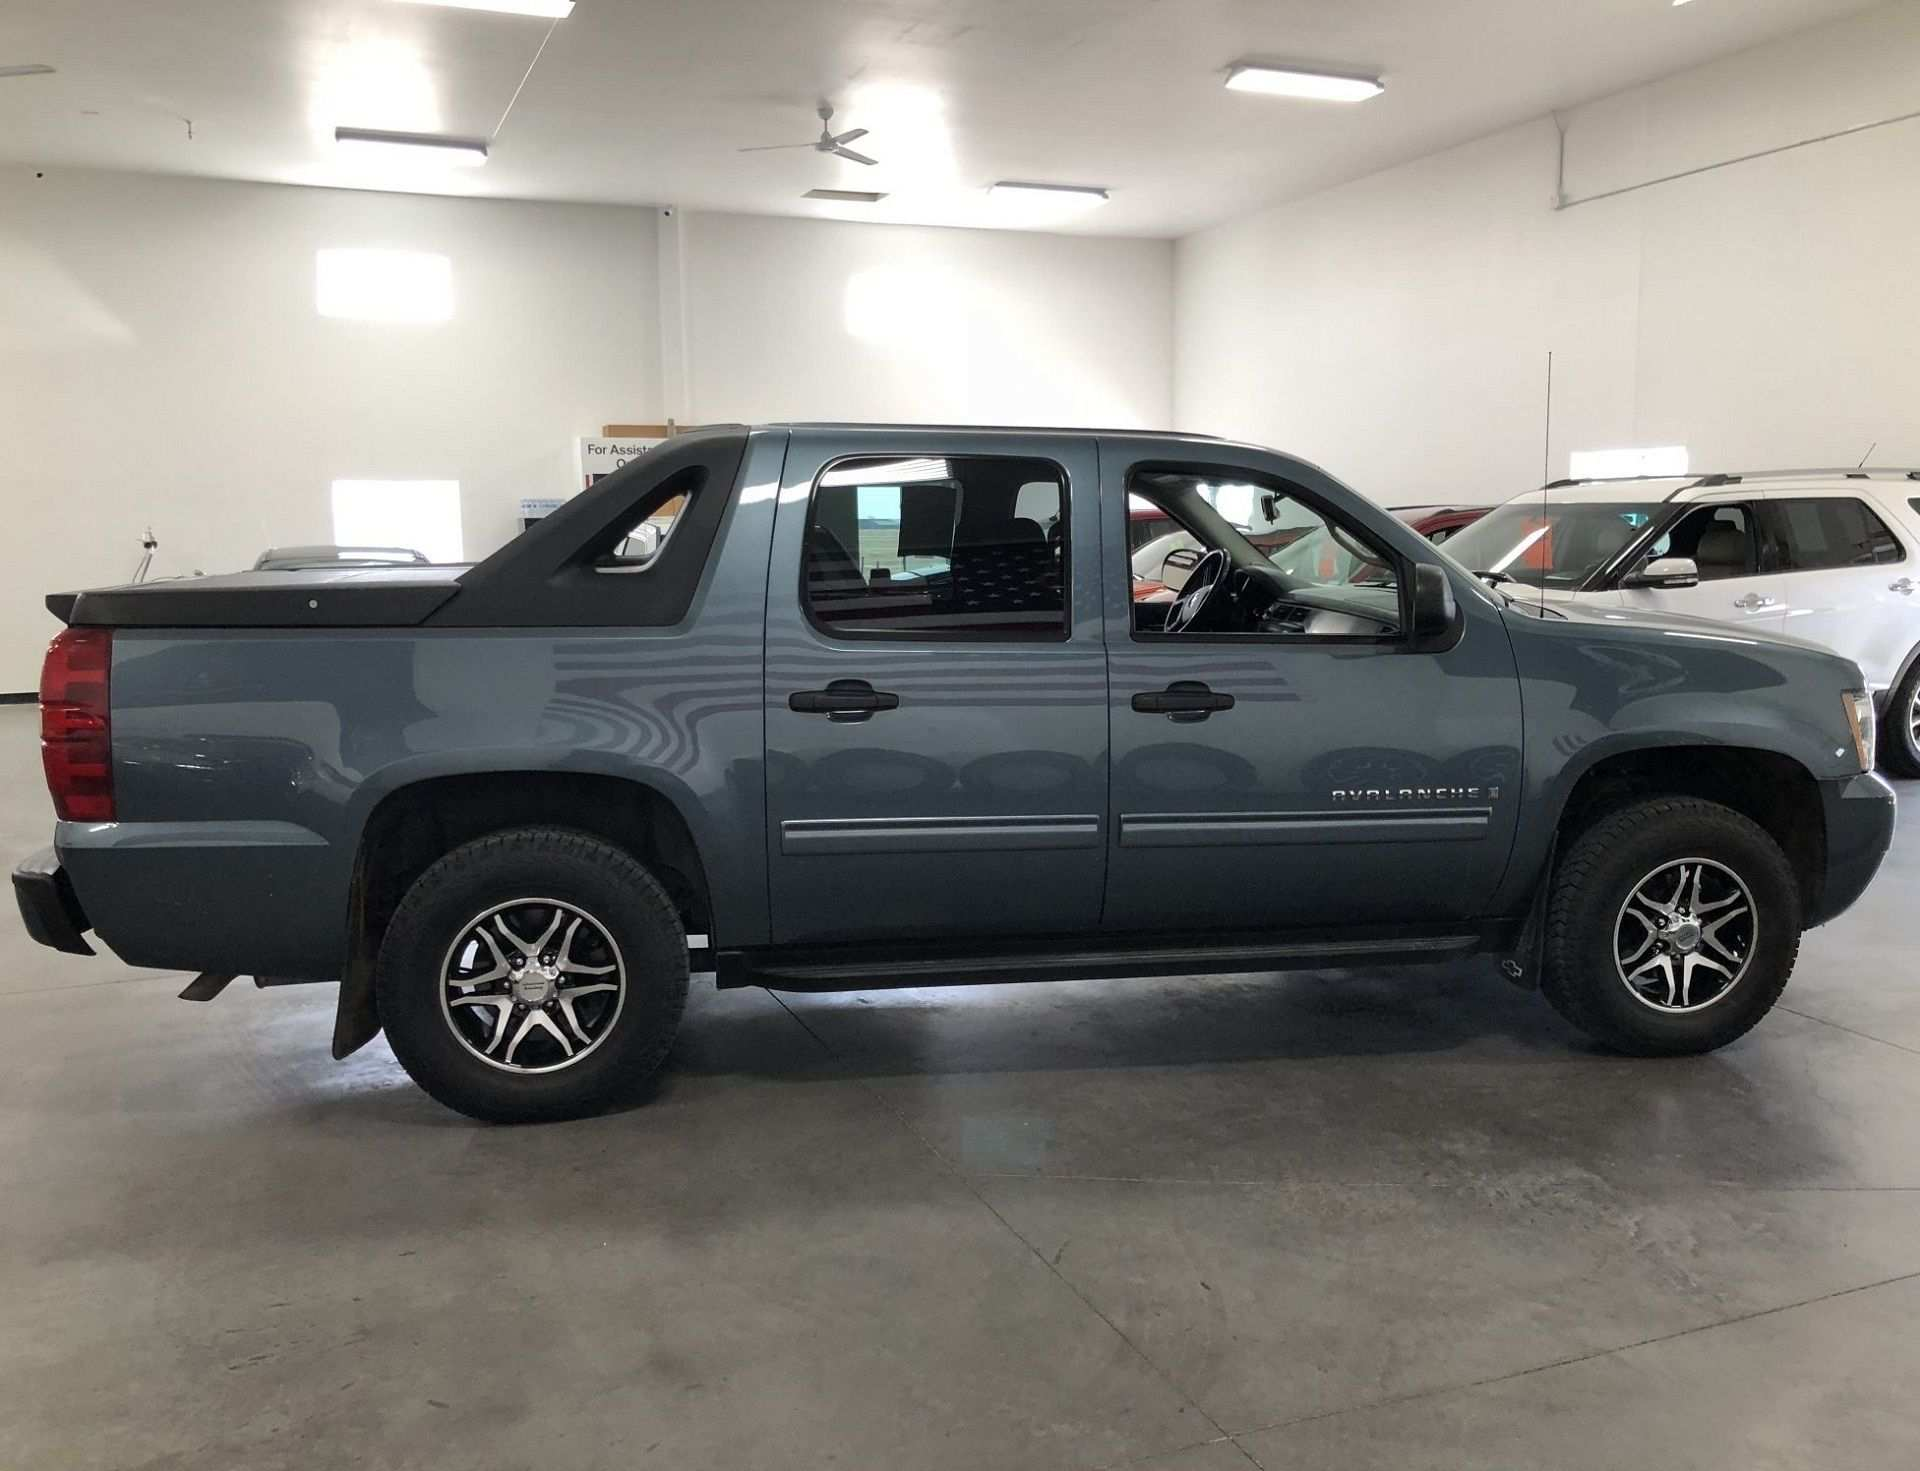 72 Great 2020 Chevy Avalanche Performance with 2020 Chevy Avalanche